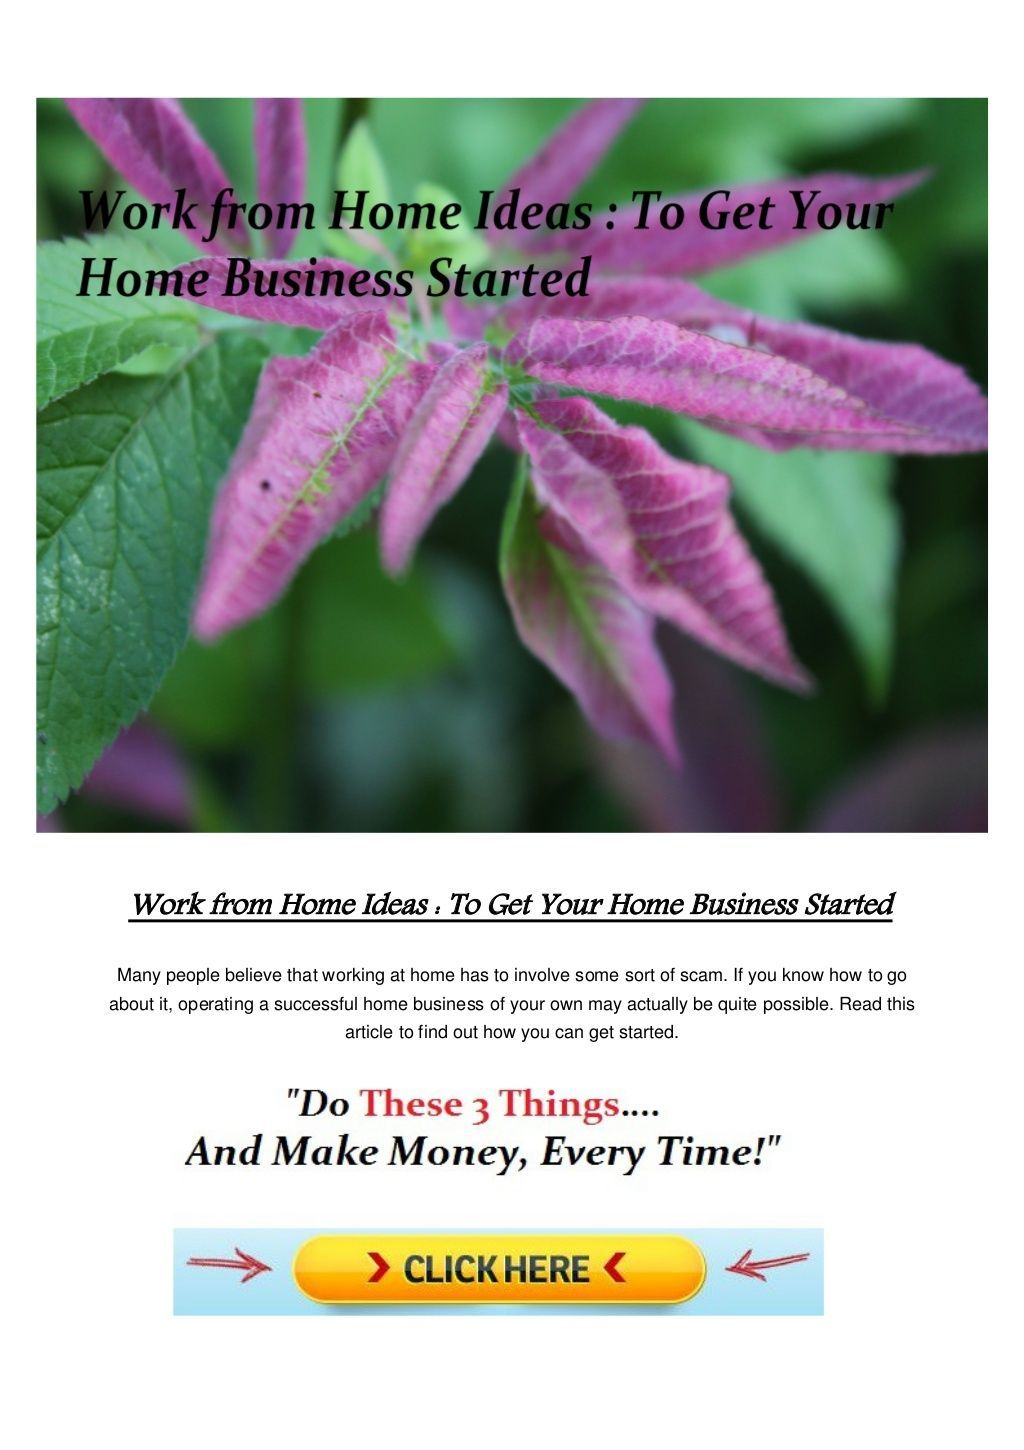 Work From Home Ideas To Get Your Home Business Started By Online